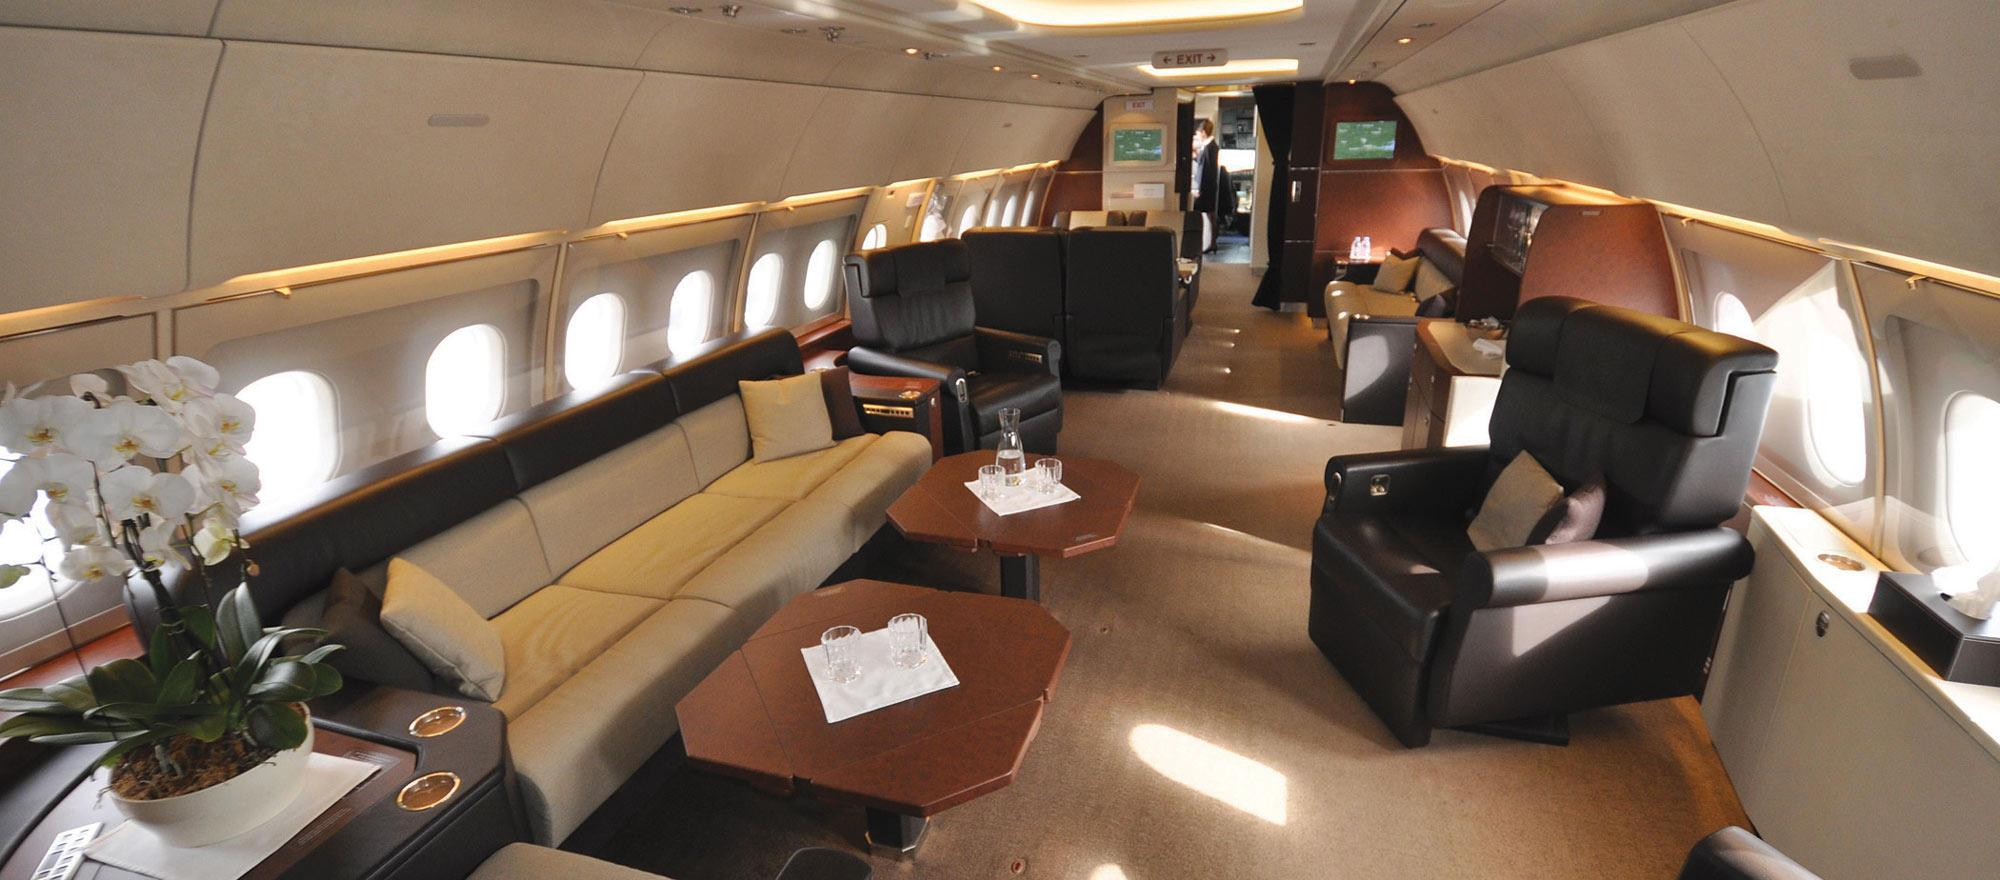 Large-cabin bizliners such as this Airbus ACJ318 offer the ultimate in comfort and space, with many often having separate living room, dining area and bedroom.